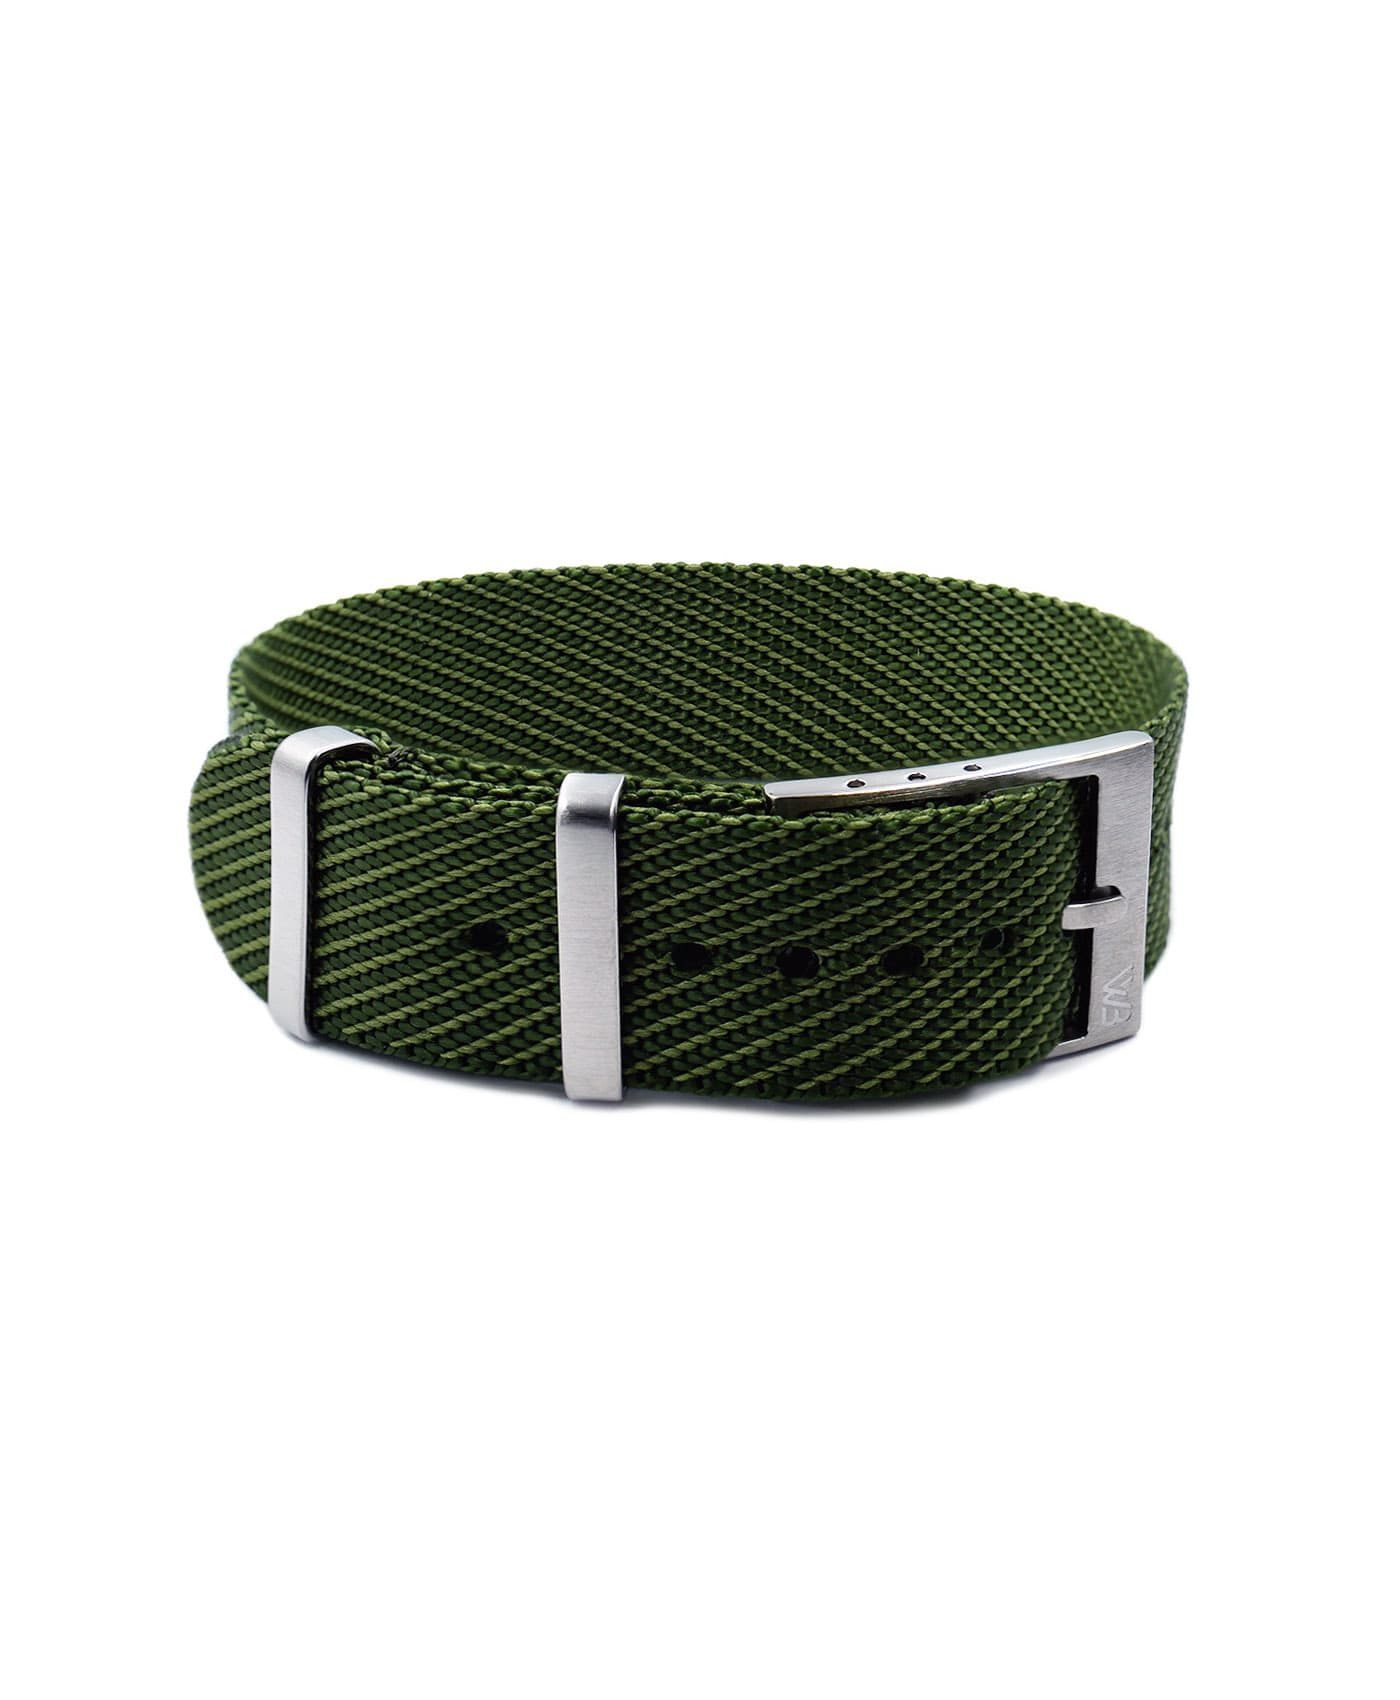 Adjustable NATO strap green front